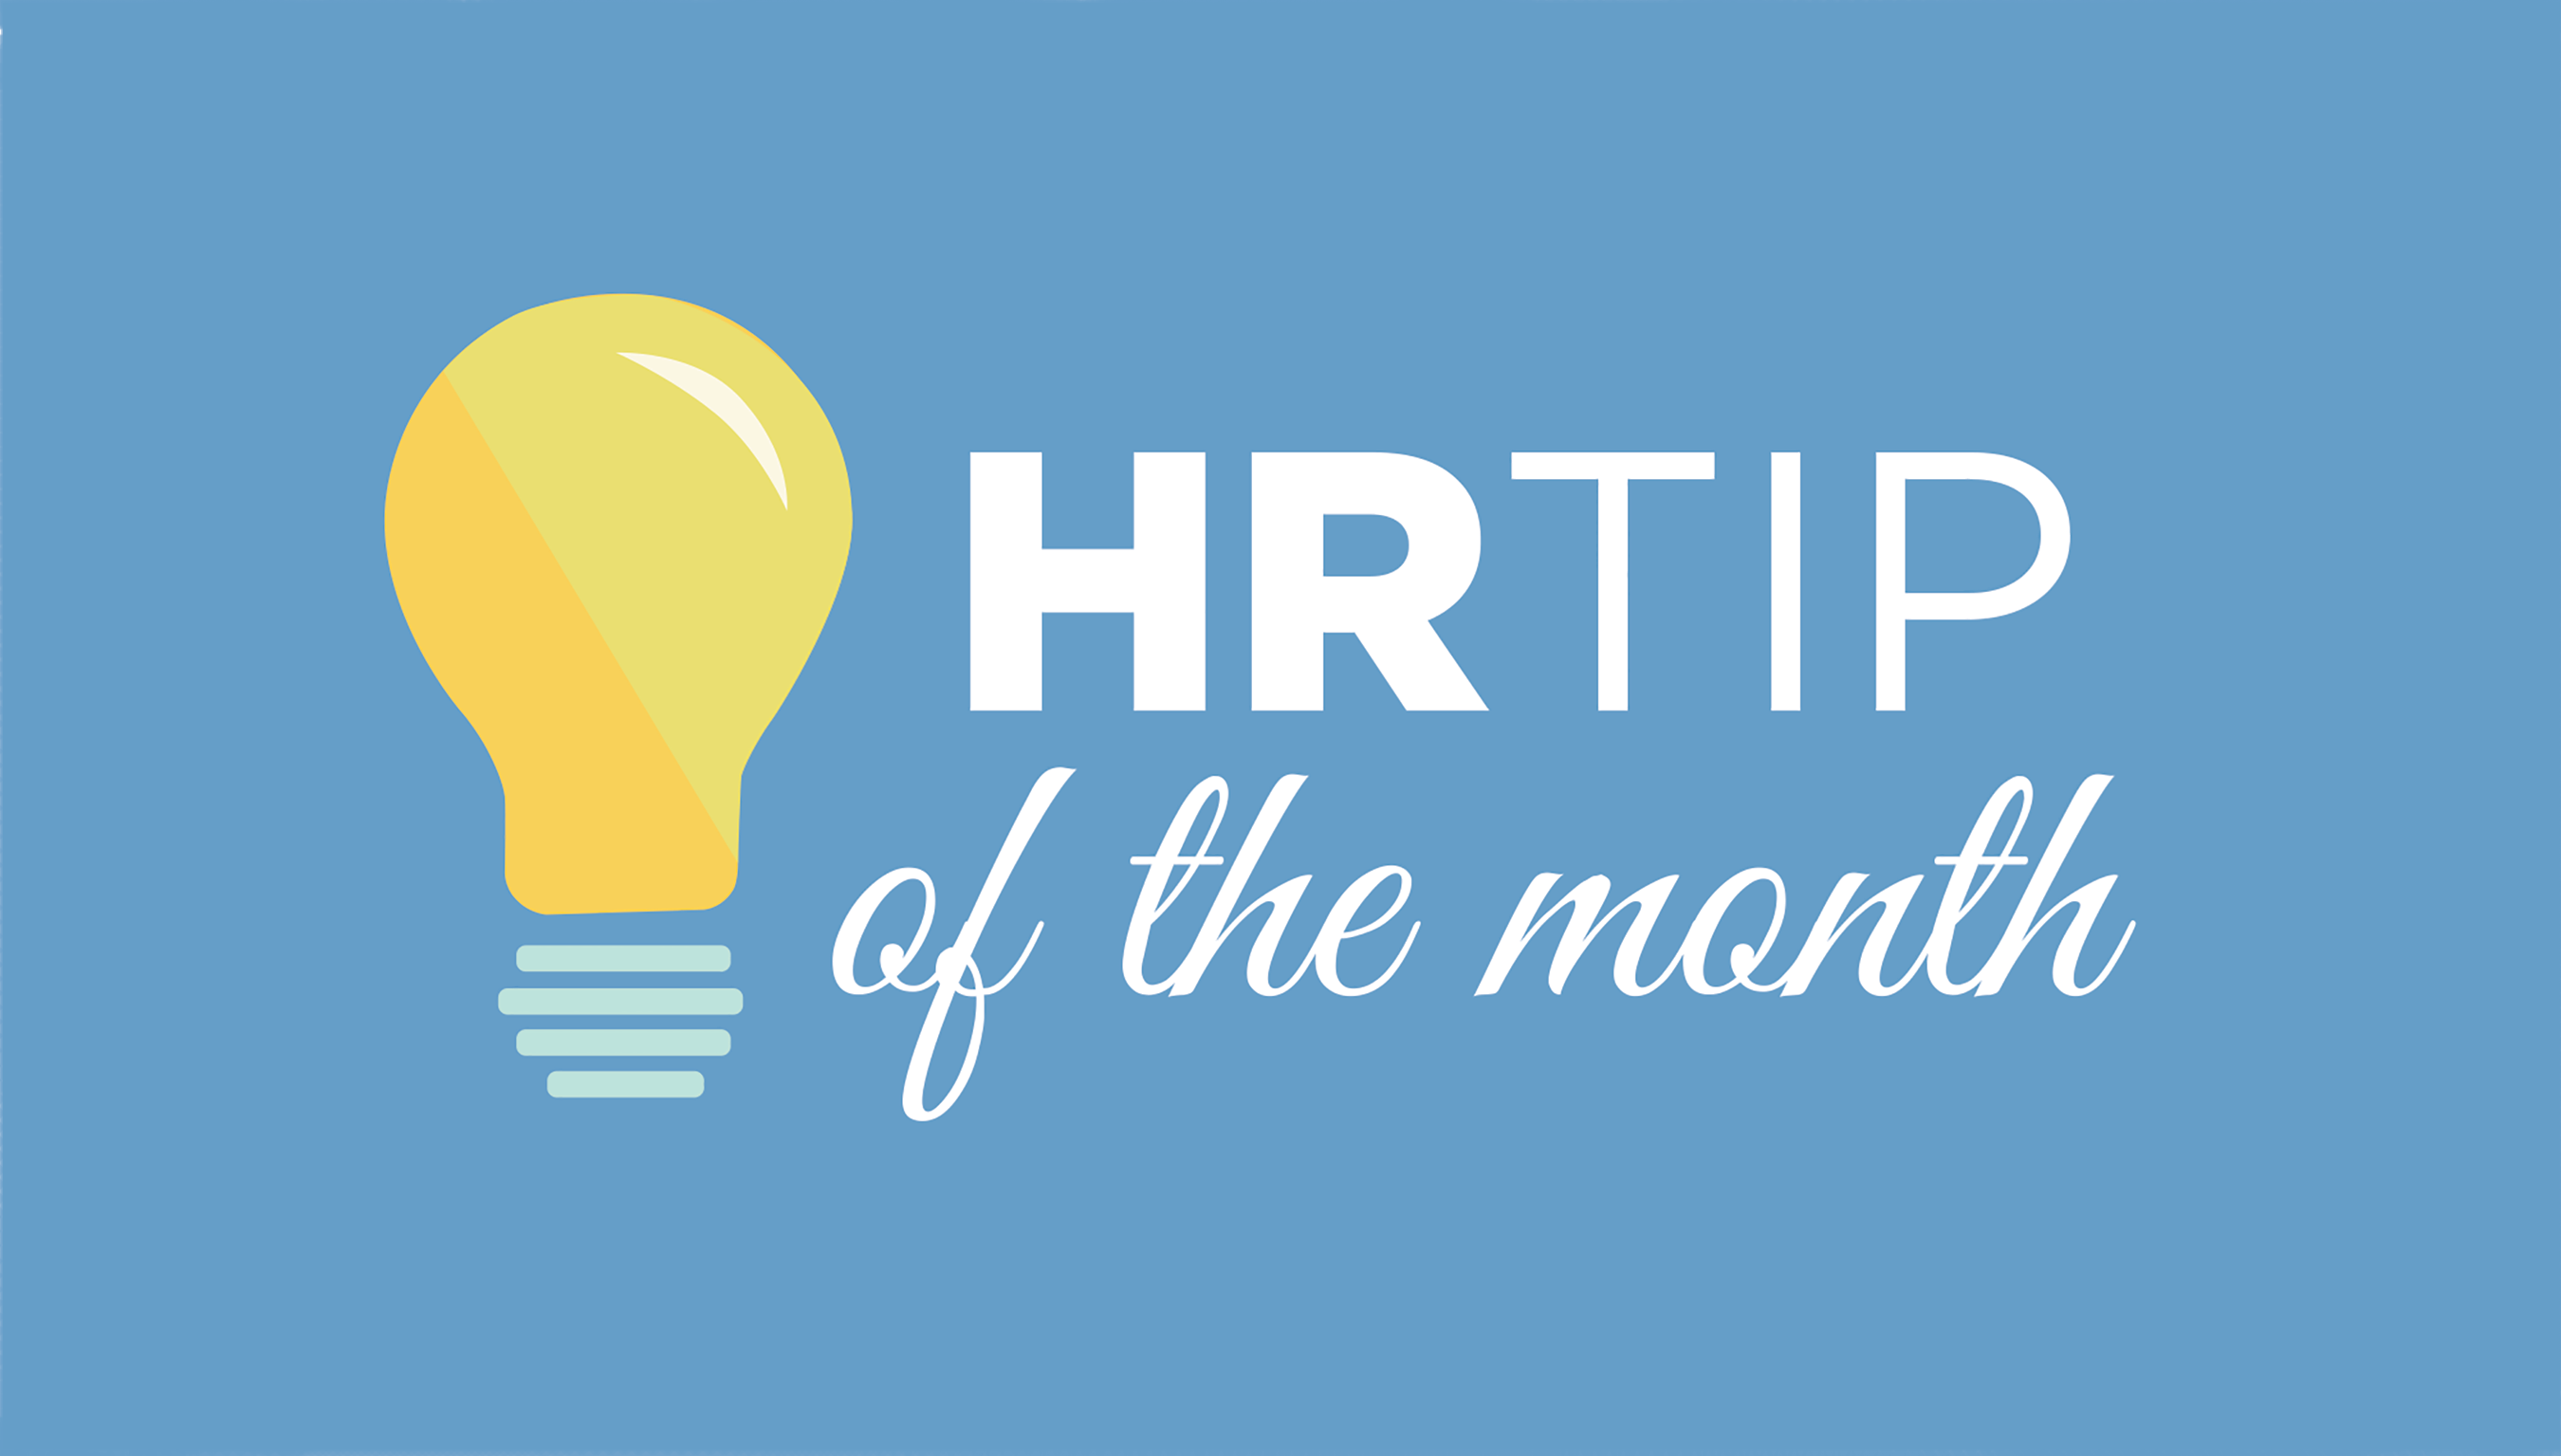 hr tip of the month - flsa coverage